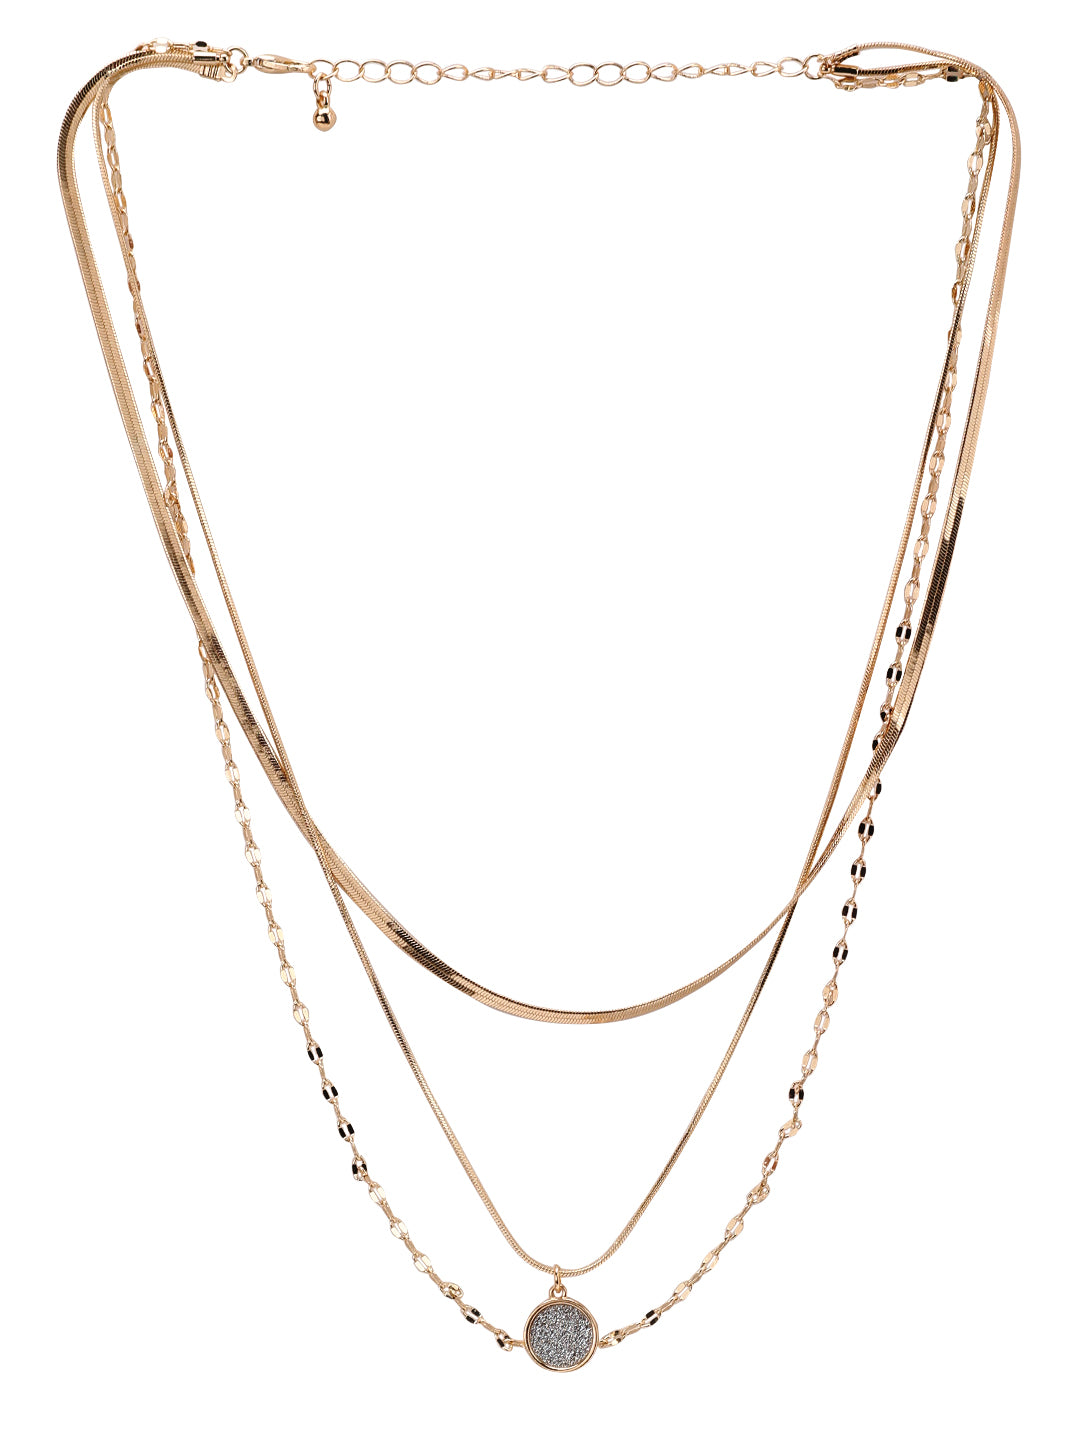 GOLD-TONED LAYERED NECKLACE